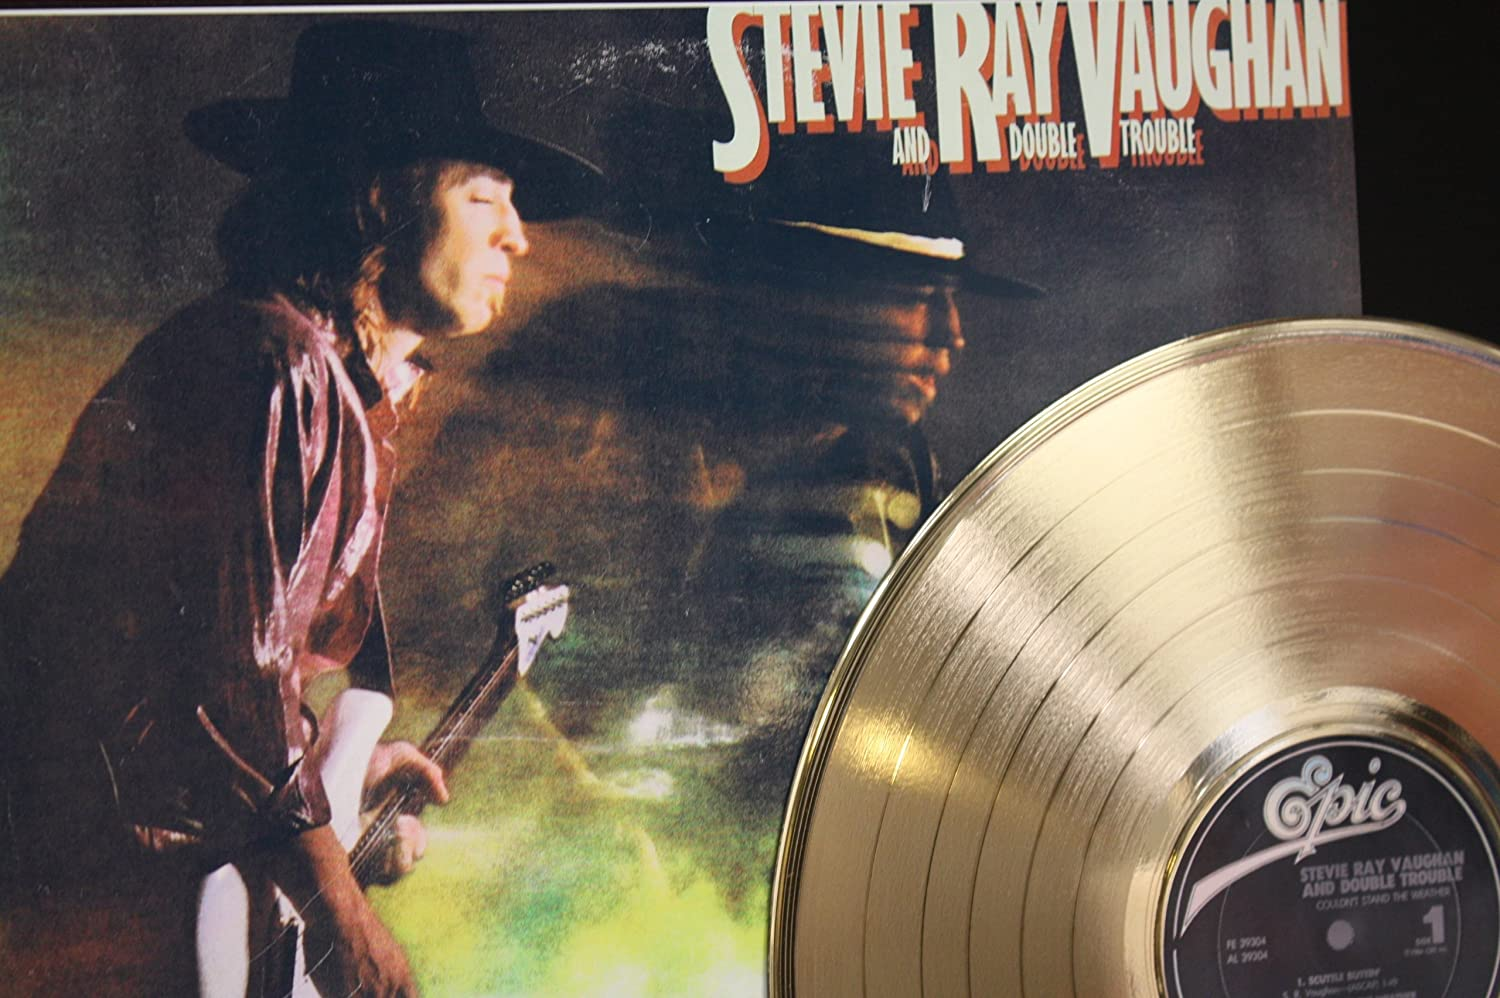 Stevie Ray Vaughan Couldn'T Stand The Weather Gold LP Record LTD Edition Display